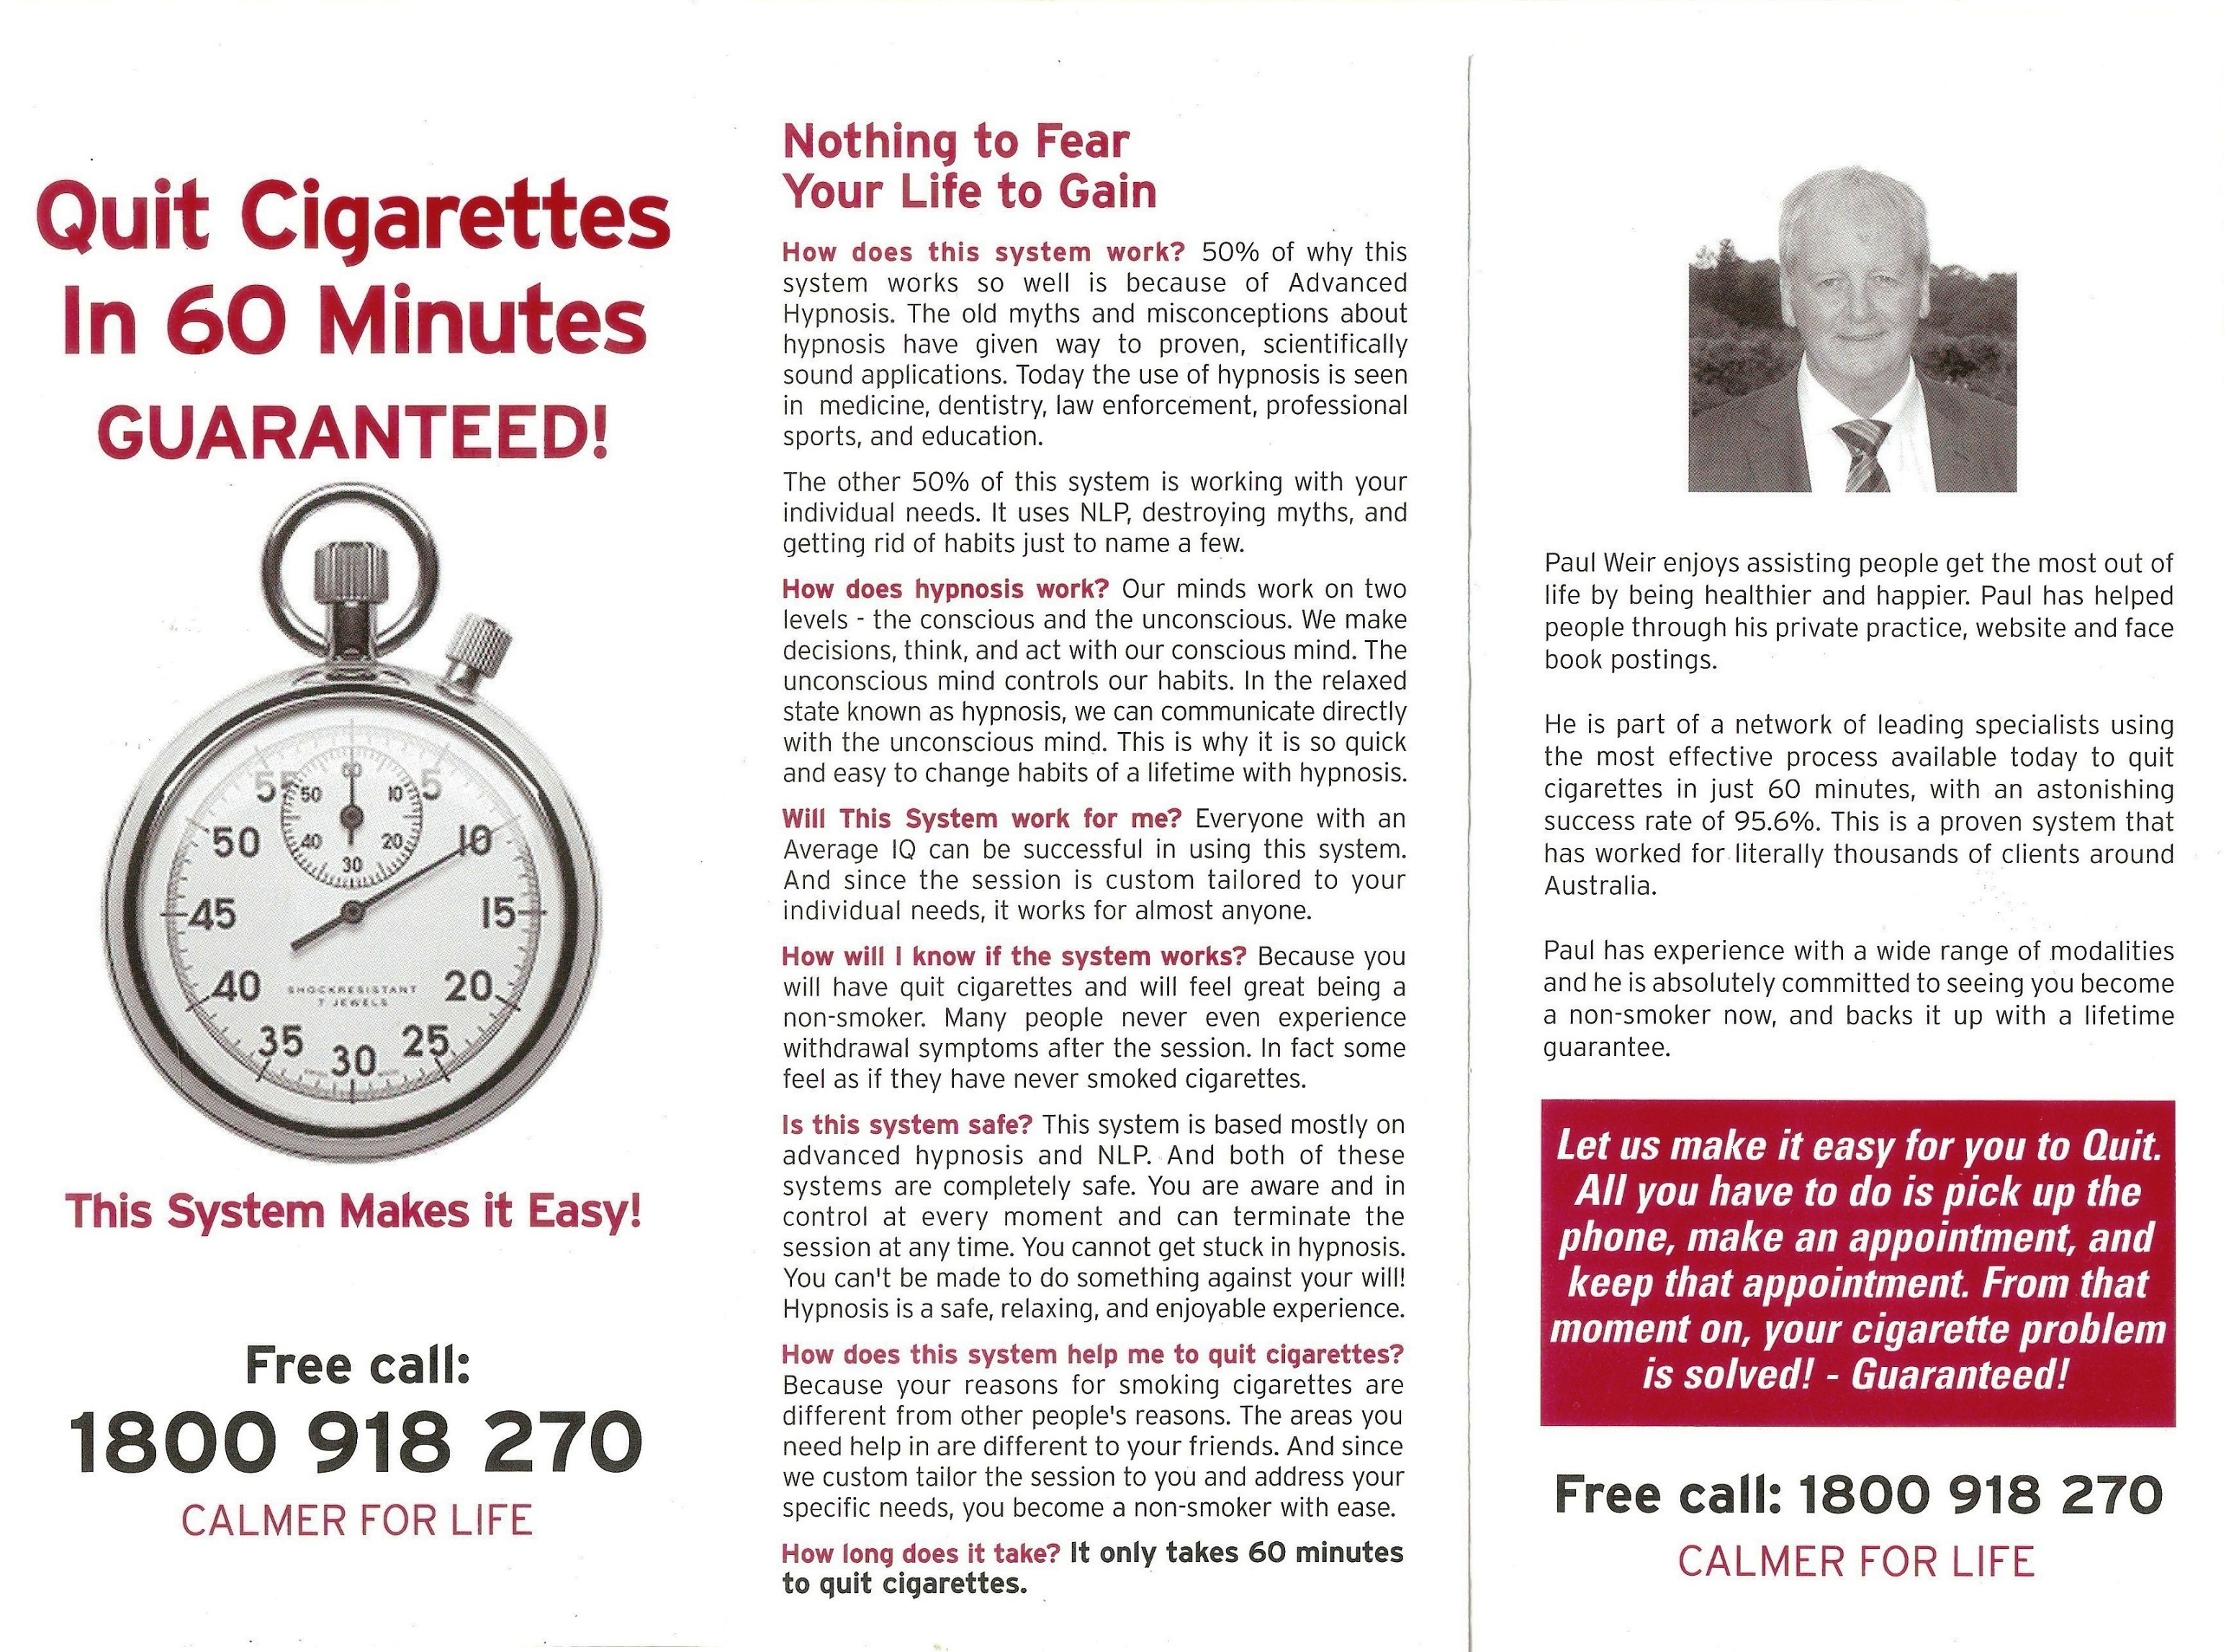 Quit Cigarettes in 60 Minutes - GUARANTEED! This system makes it easy! Free call: 1800 918 270 Paul Weir, Calmer for Life